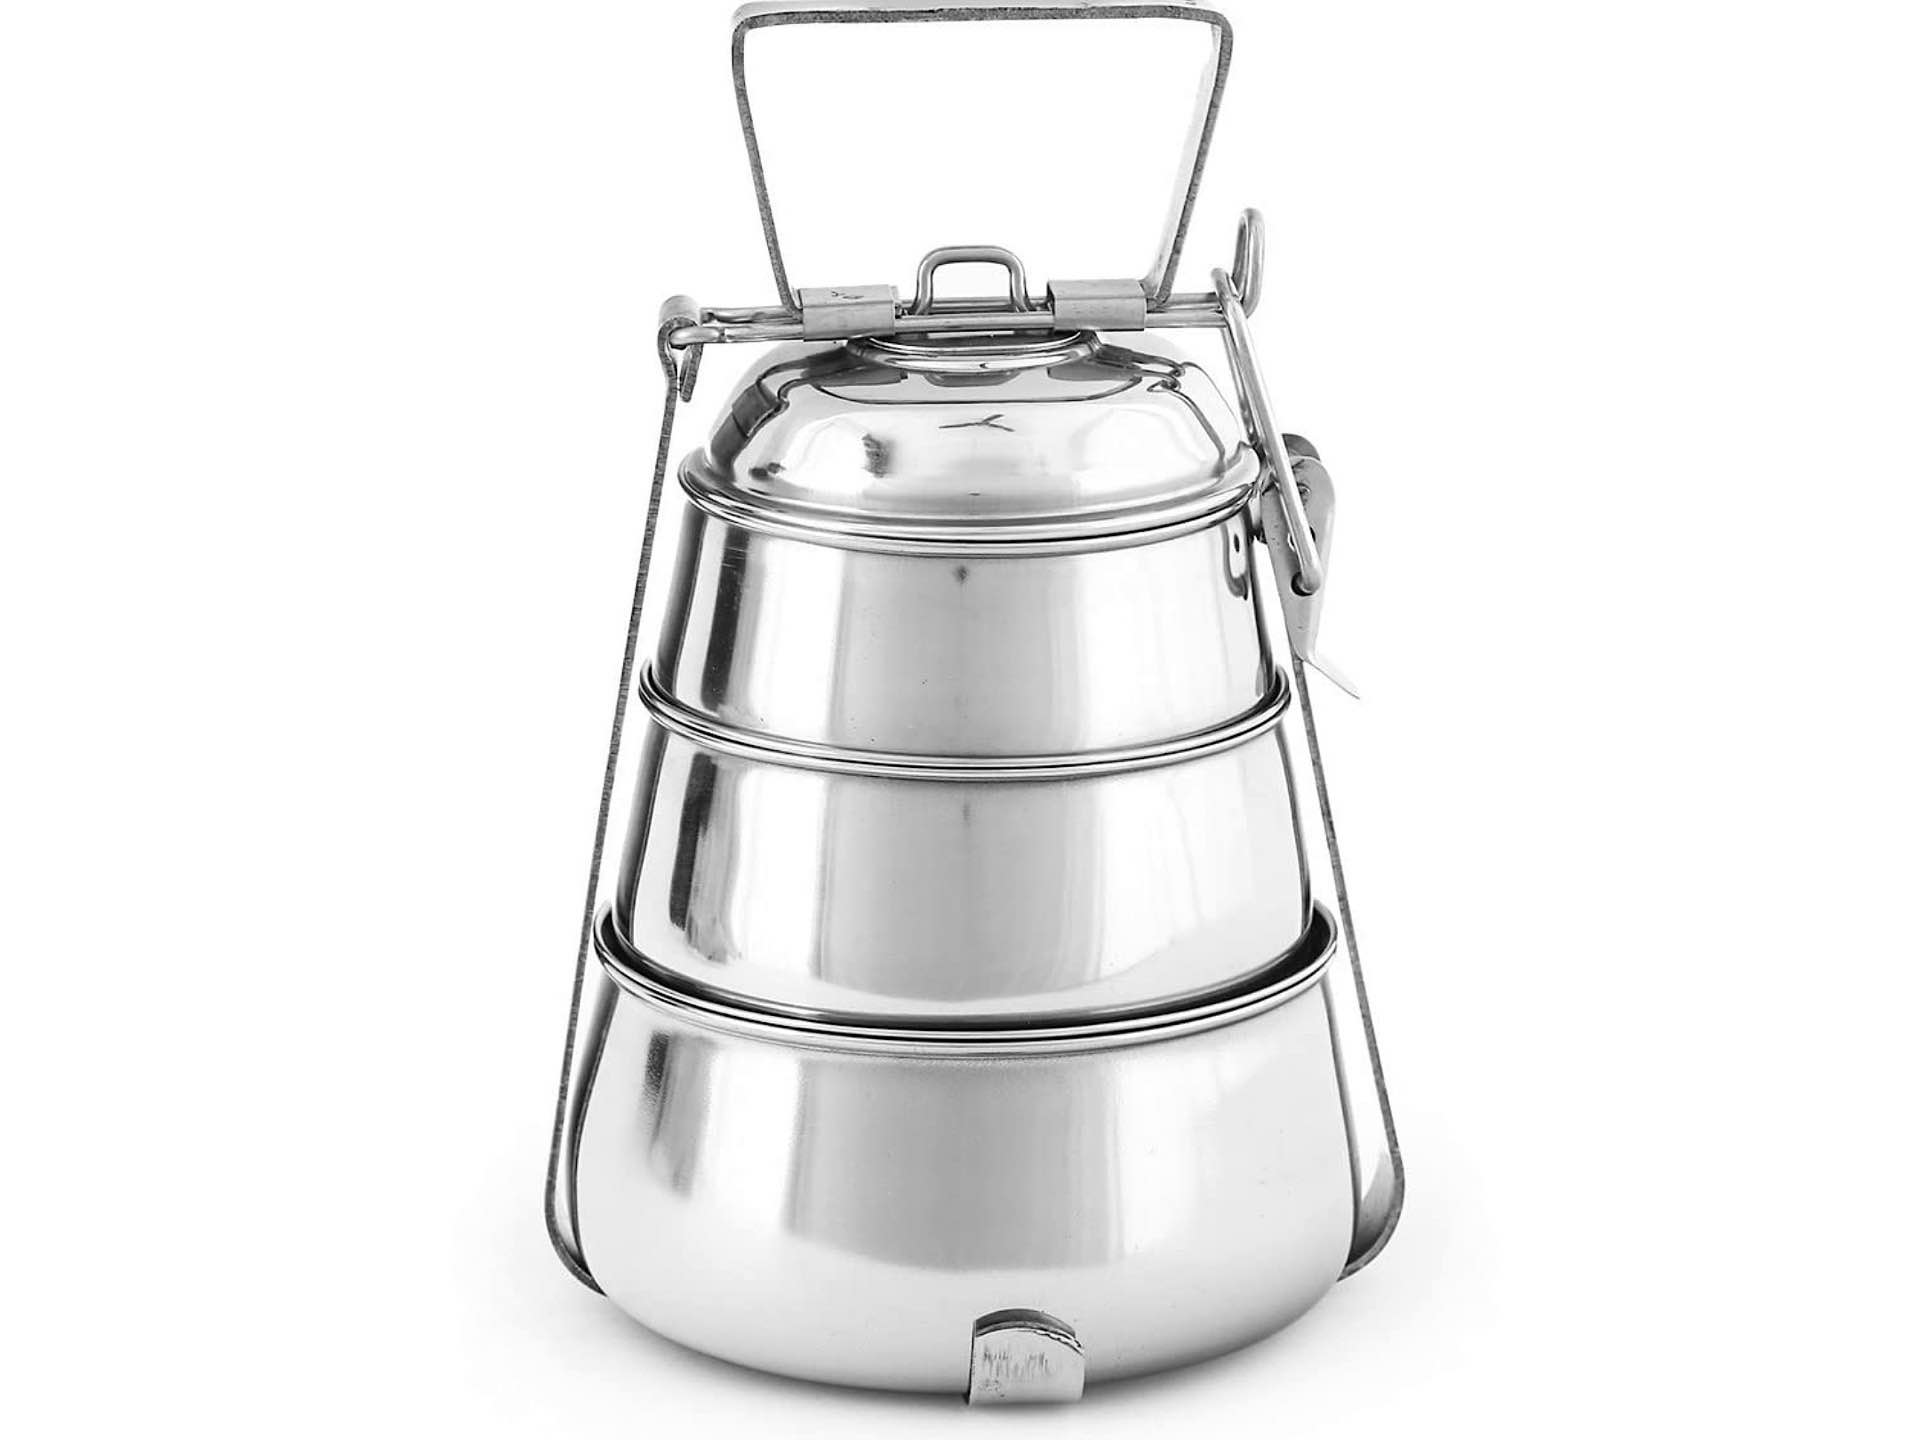 king-international-stainless-steel-pyramid-tiffin-lunchbox